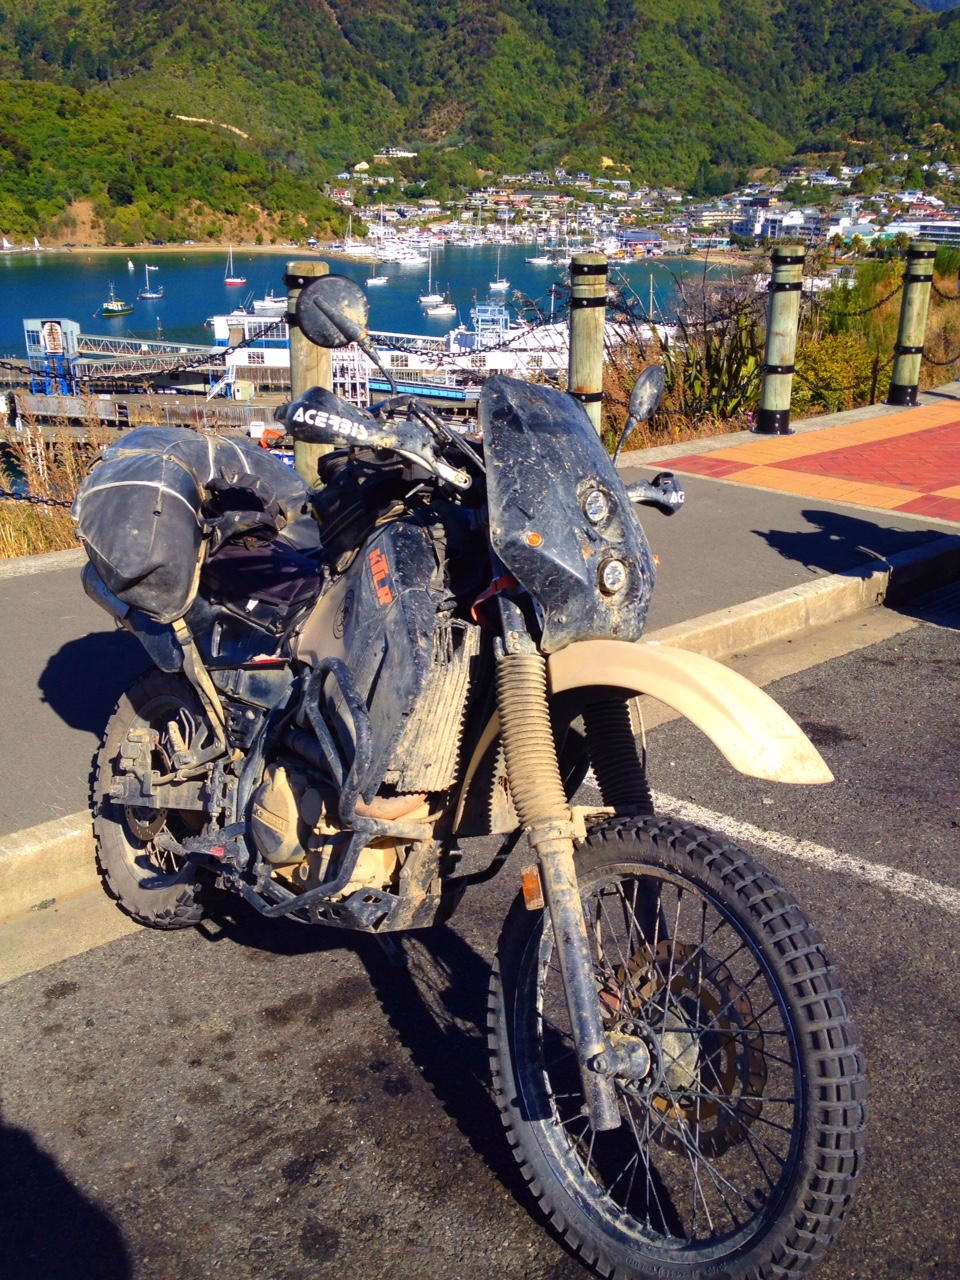 Citroen Berlingo Schaltplan besides Watch additionally Touratech GD Hand Guard Kit W LED Blinkers Ducati Multistrada 1200 2010 2014 in addition  as well Giant Loop Rider Kawasaki Klr650 In New Zealand With Coyote Saddlebag. on klr 650 controls